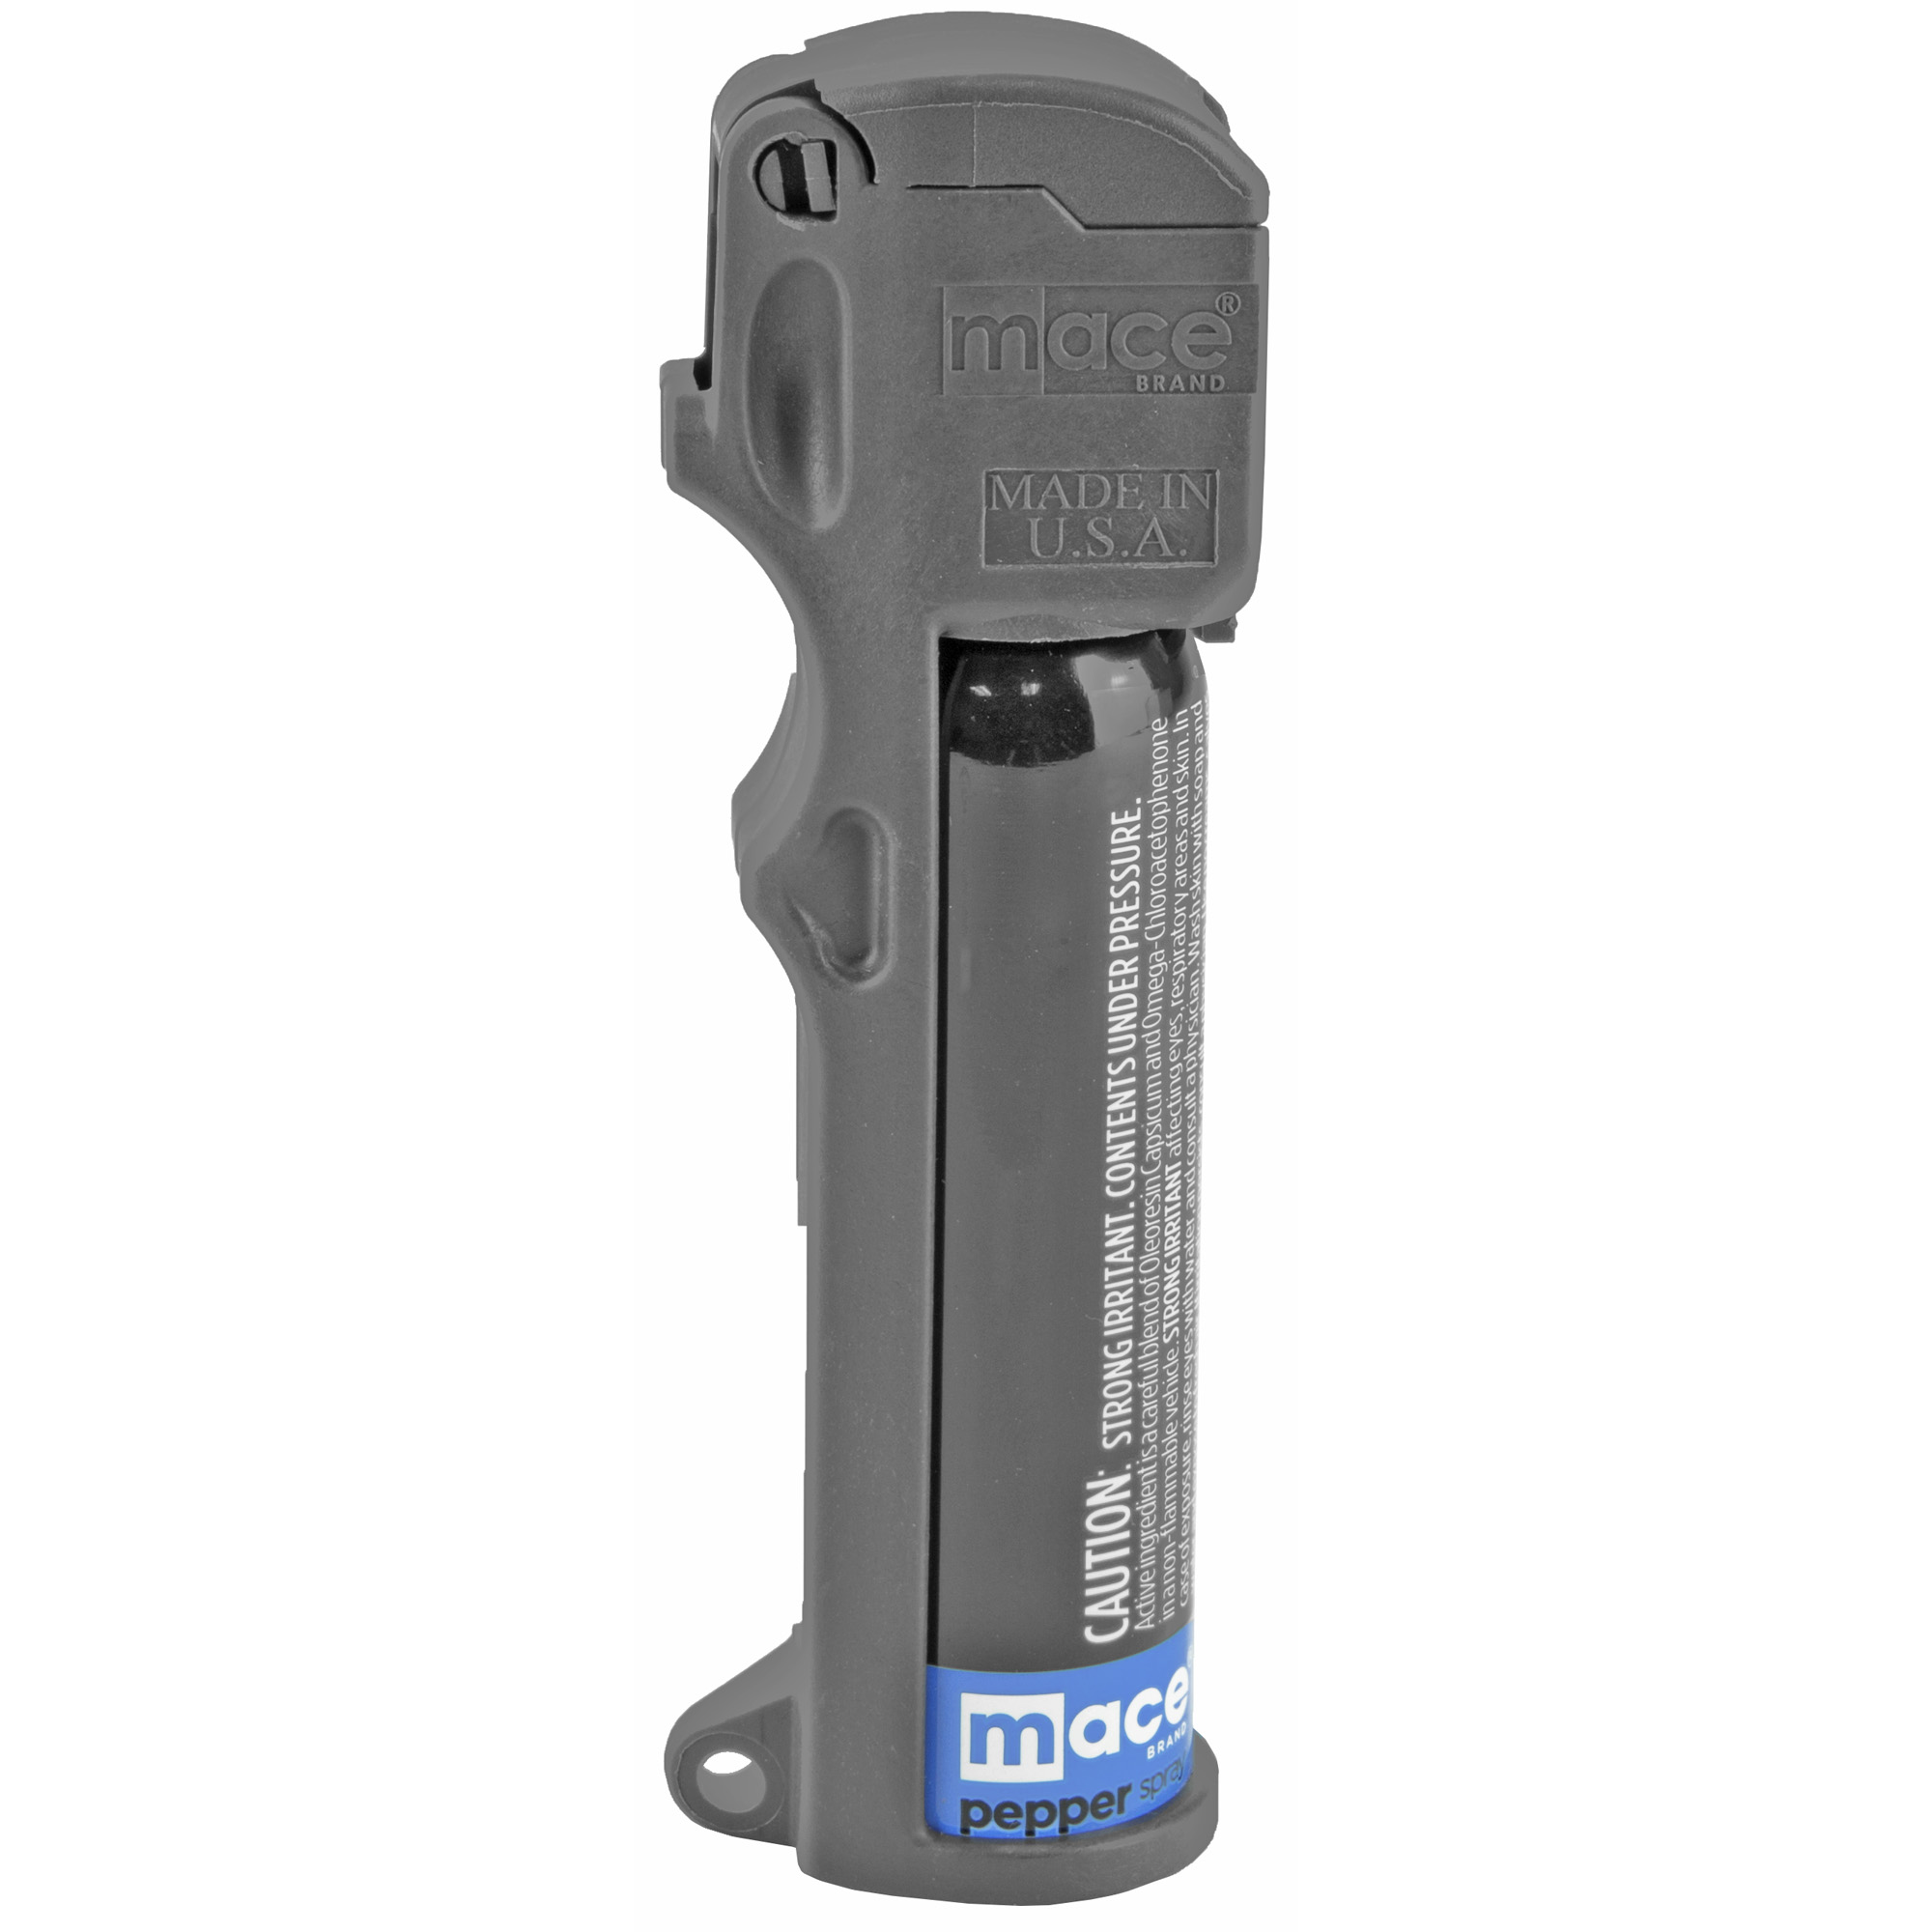 Mace(R) Brand is the original trusted brand of pepper spray products for self-defense against attacks by people and animals. Mace Brand has over 30 years experience developing aerosol defense spray dispensing technologies for both the consumer and tactical markets around the world. Mace Brand is the original manufacturer and the market leader in pepper sprays.